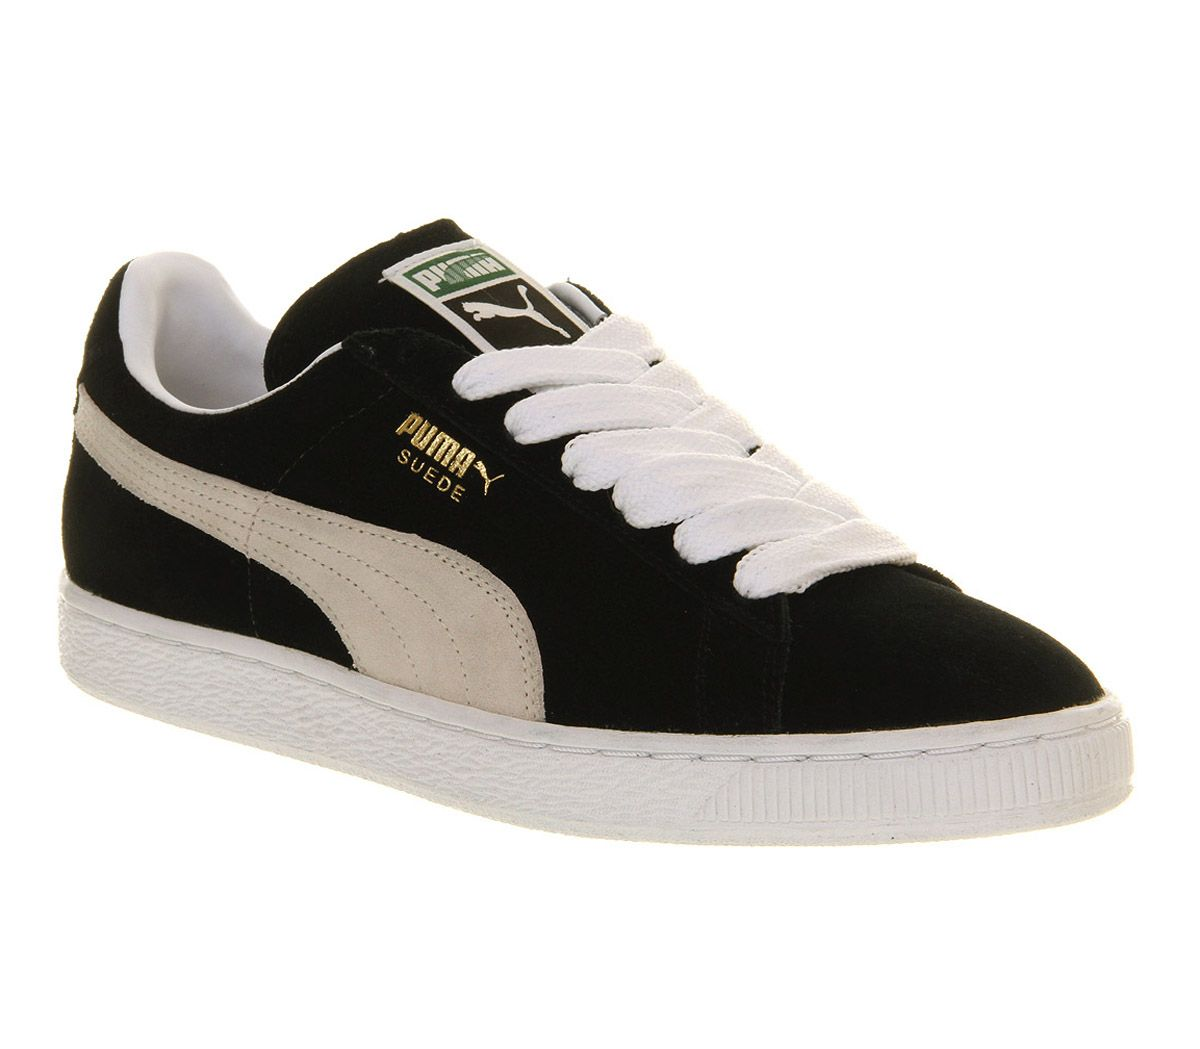 puma suede classic black white unisex sports shoes. Black Bedroom Furniture Sets. Home Design Ideas